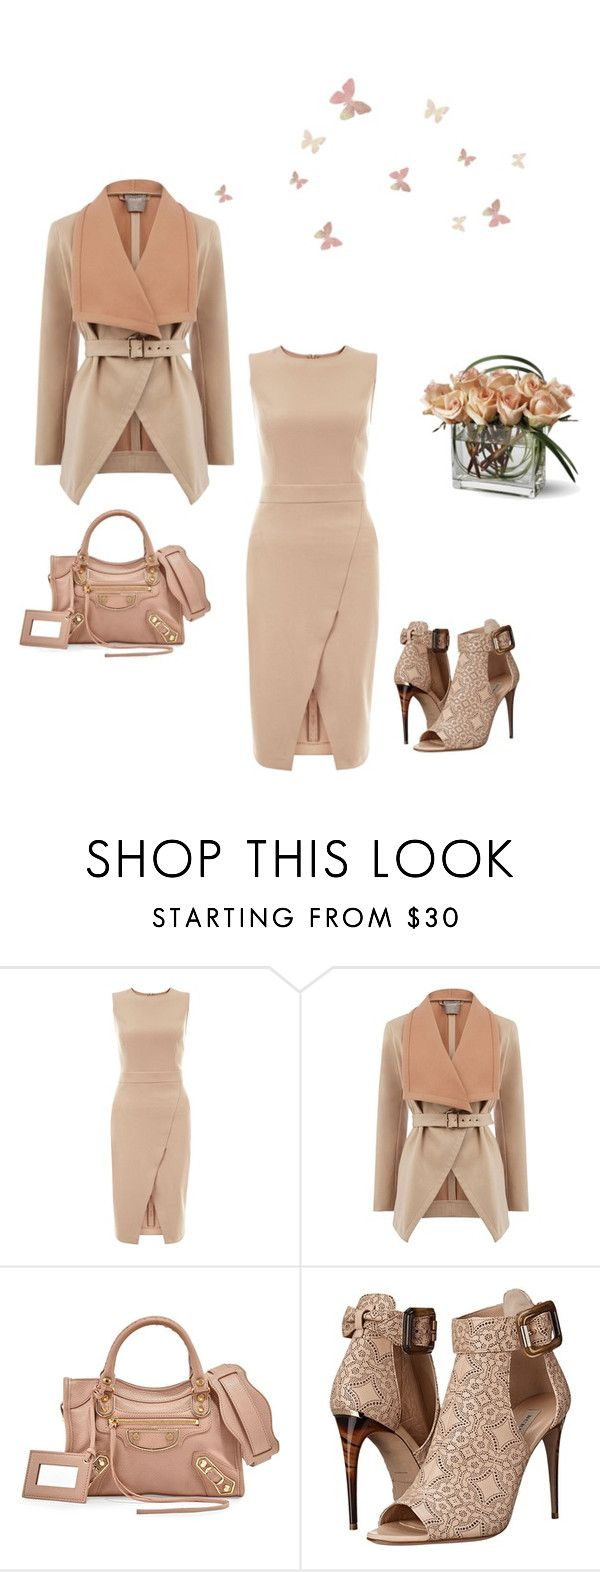 """All In A Sunday Afternoon"" by kimberlydalessandro ❤ liked on Polyvore featuring New Look, Oasis, Balenciaga and Burberry"